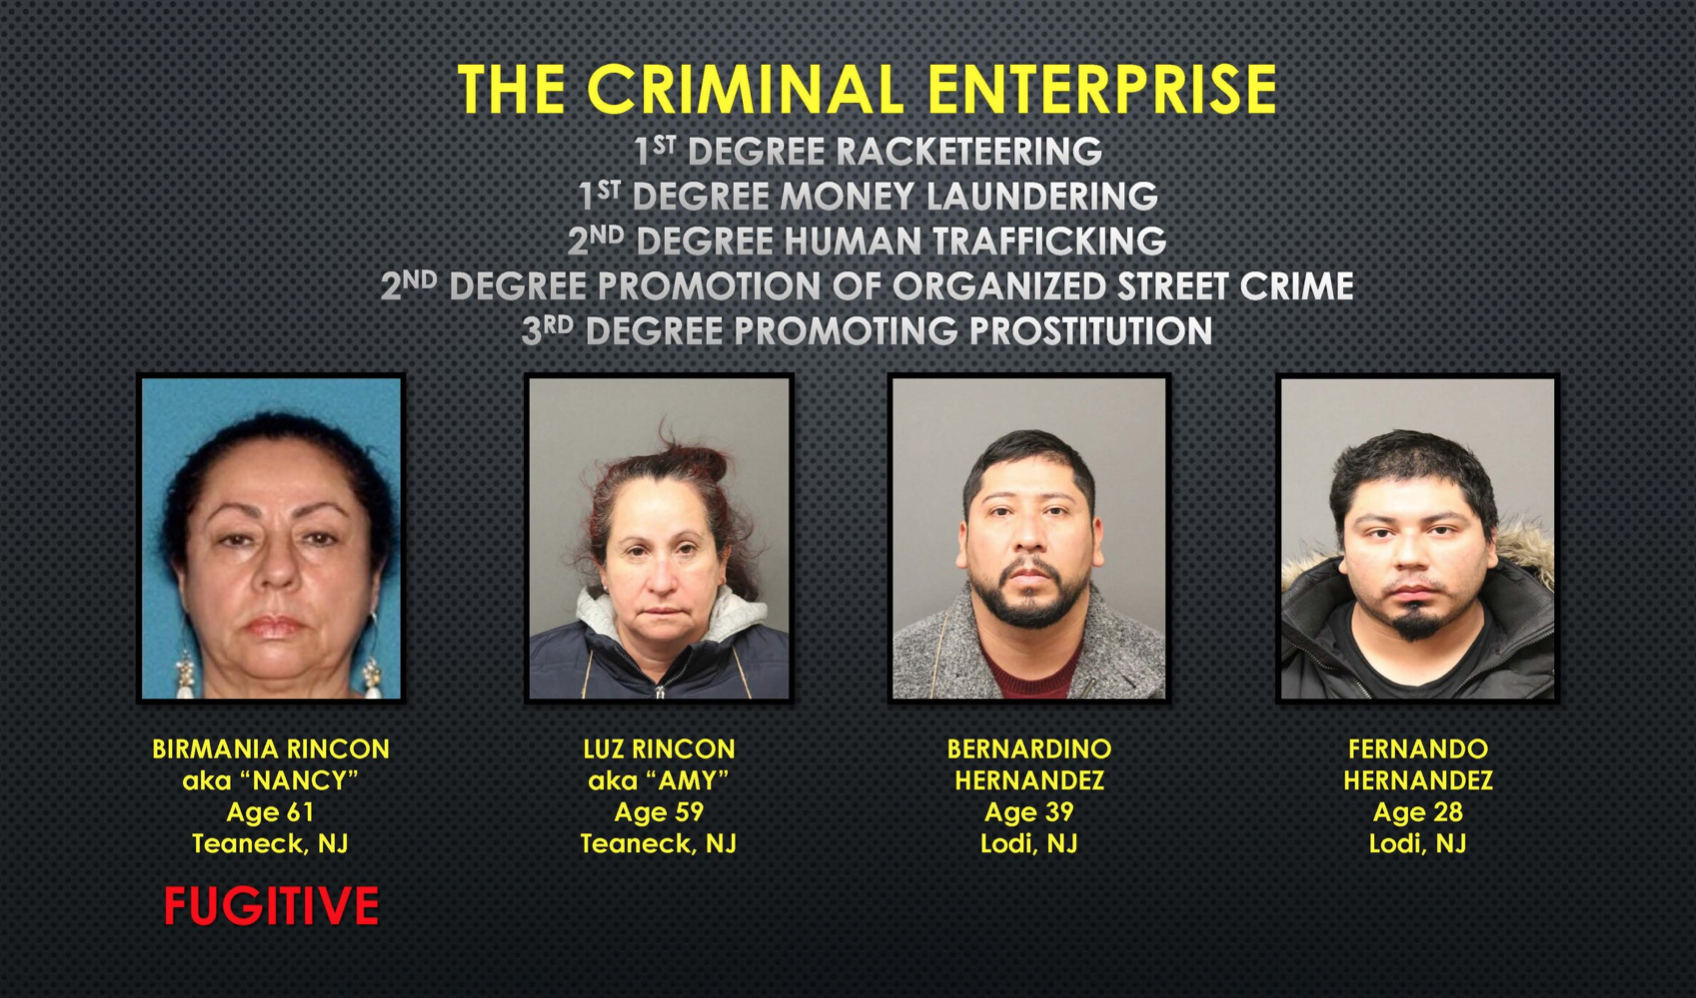 HUMAN TRAFFICKING AND PROSTITUTION RING OPERATING IN BERGEN COUNTY